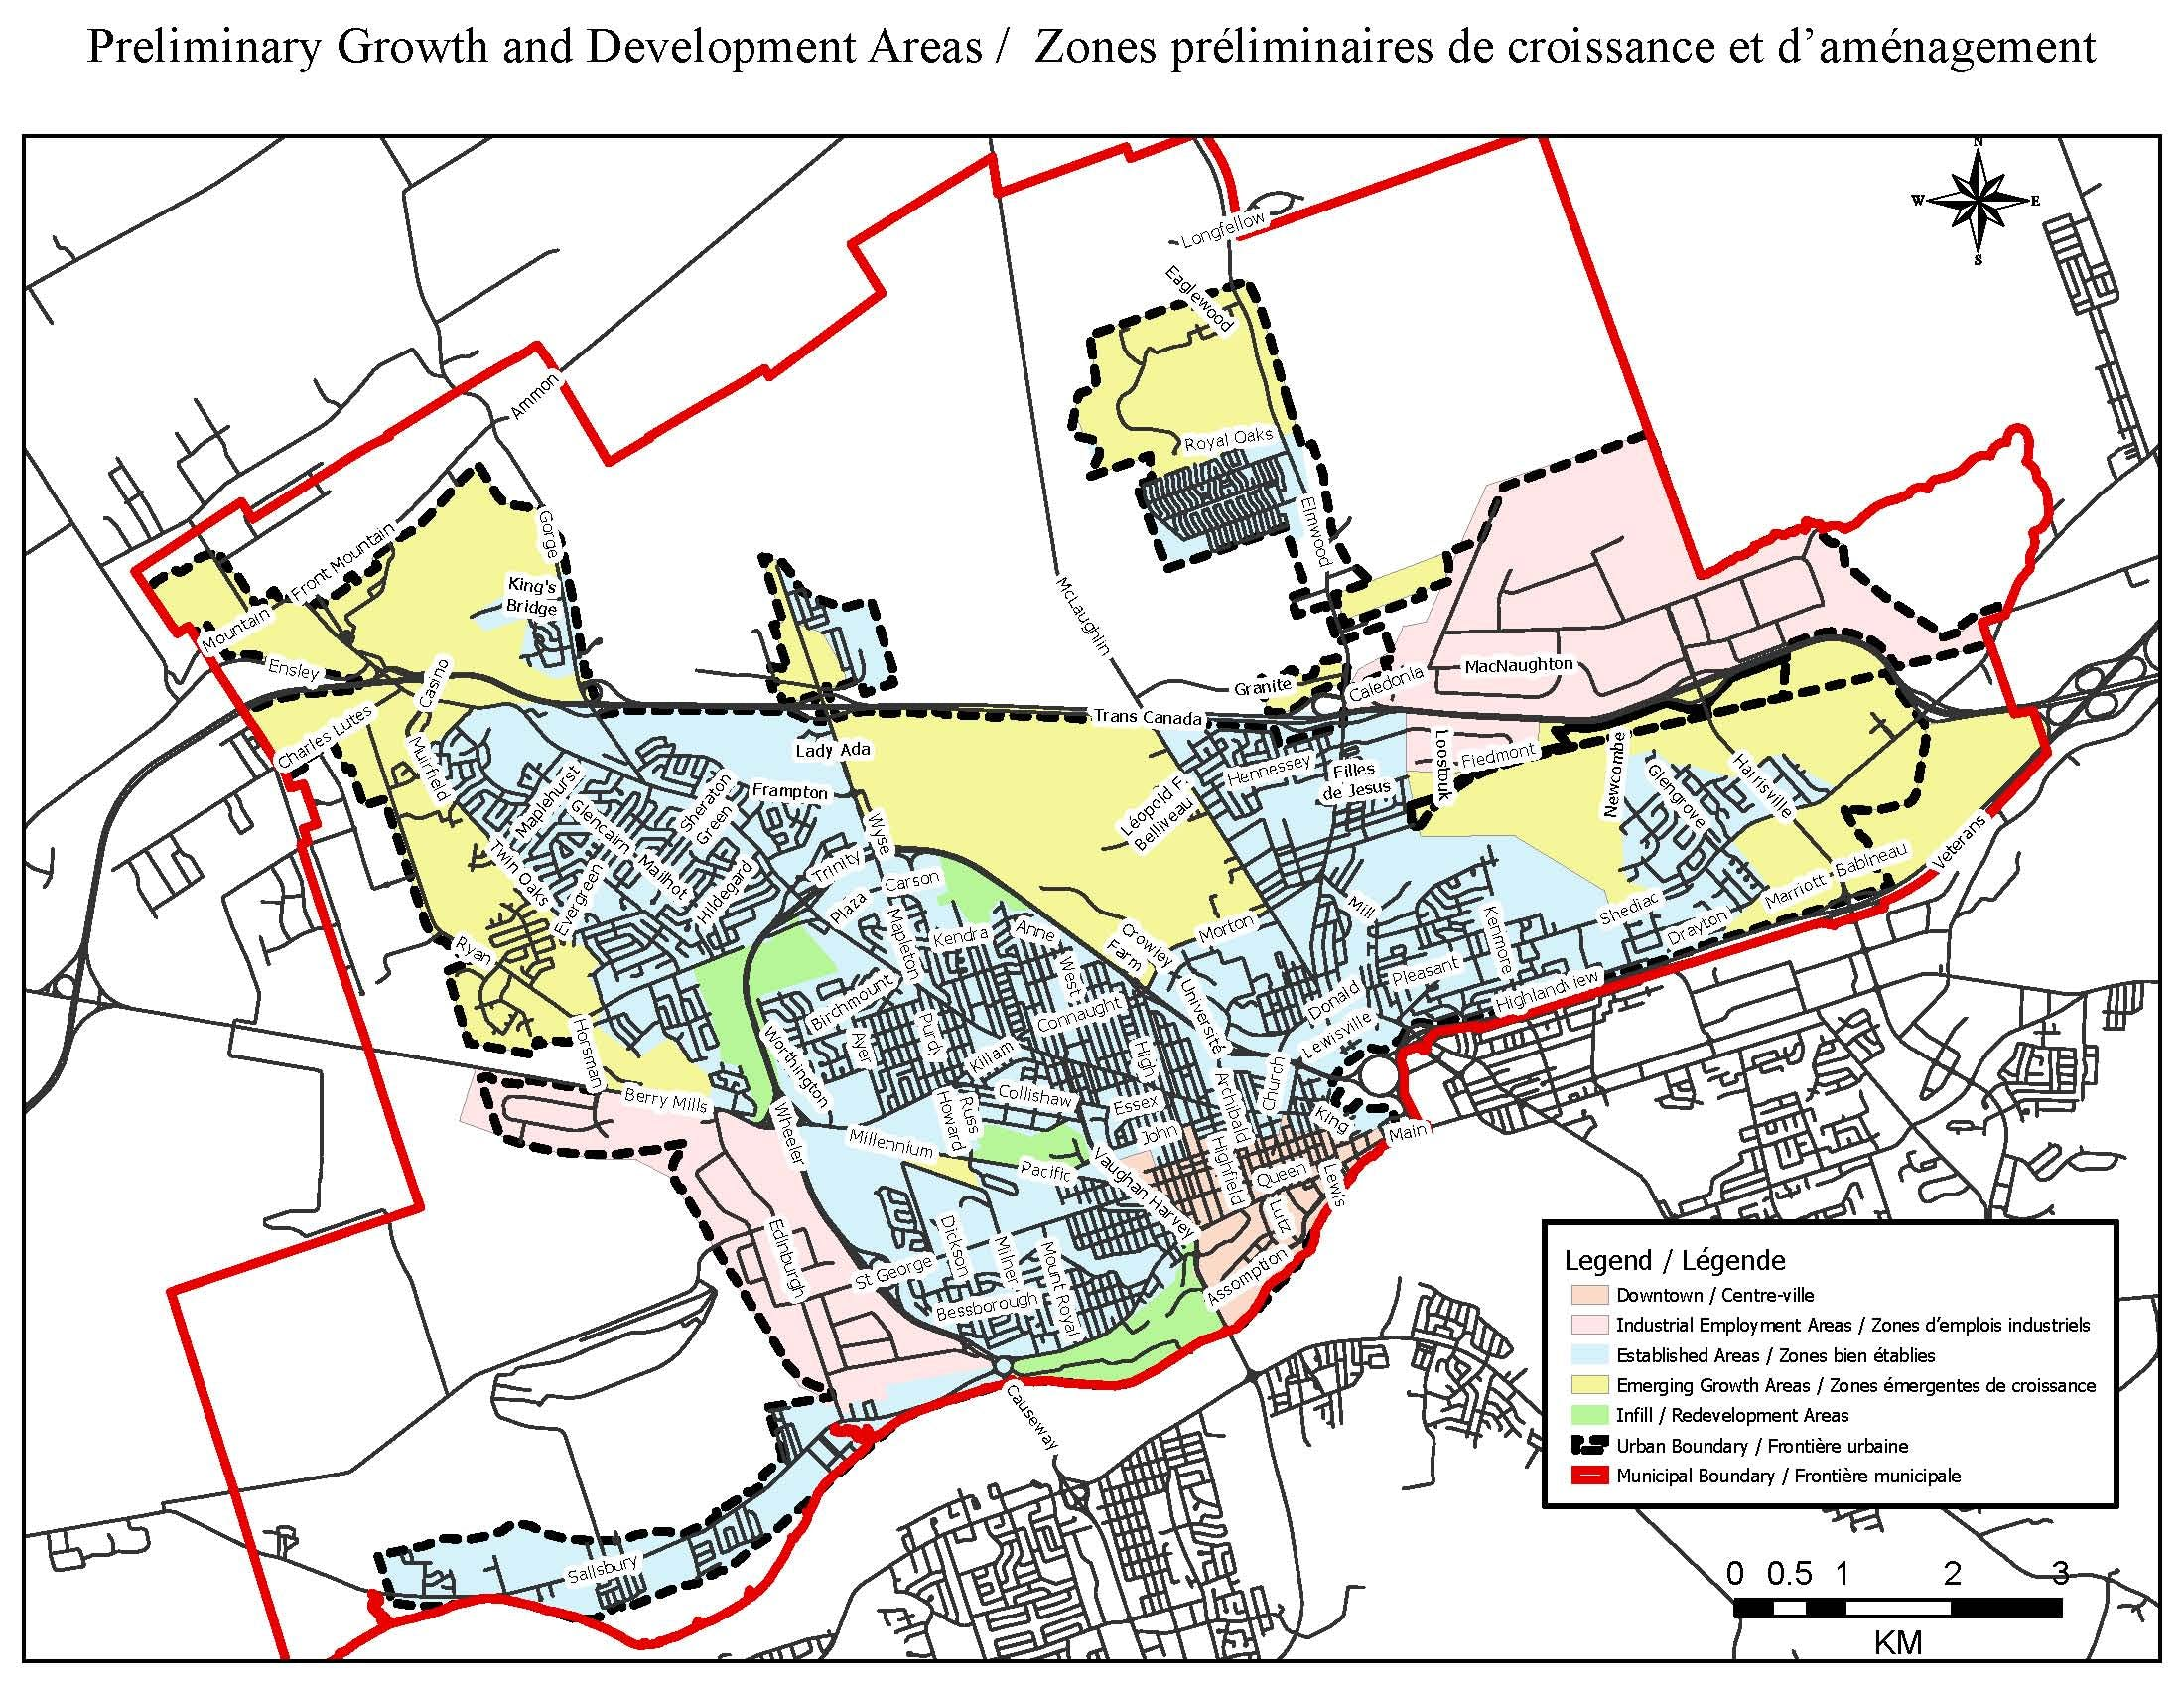 Preliminary Growth and Development Areas Zones